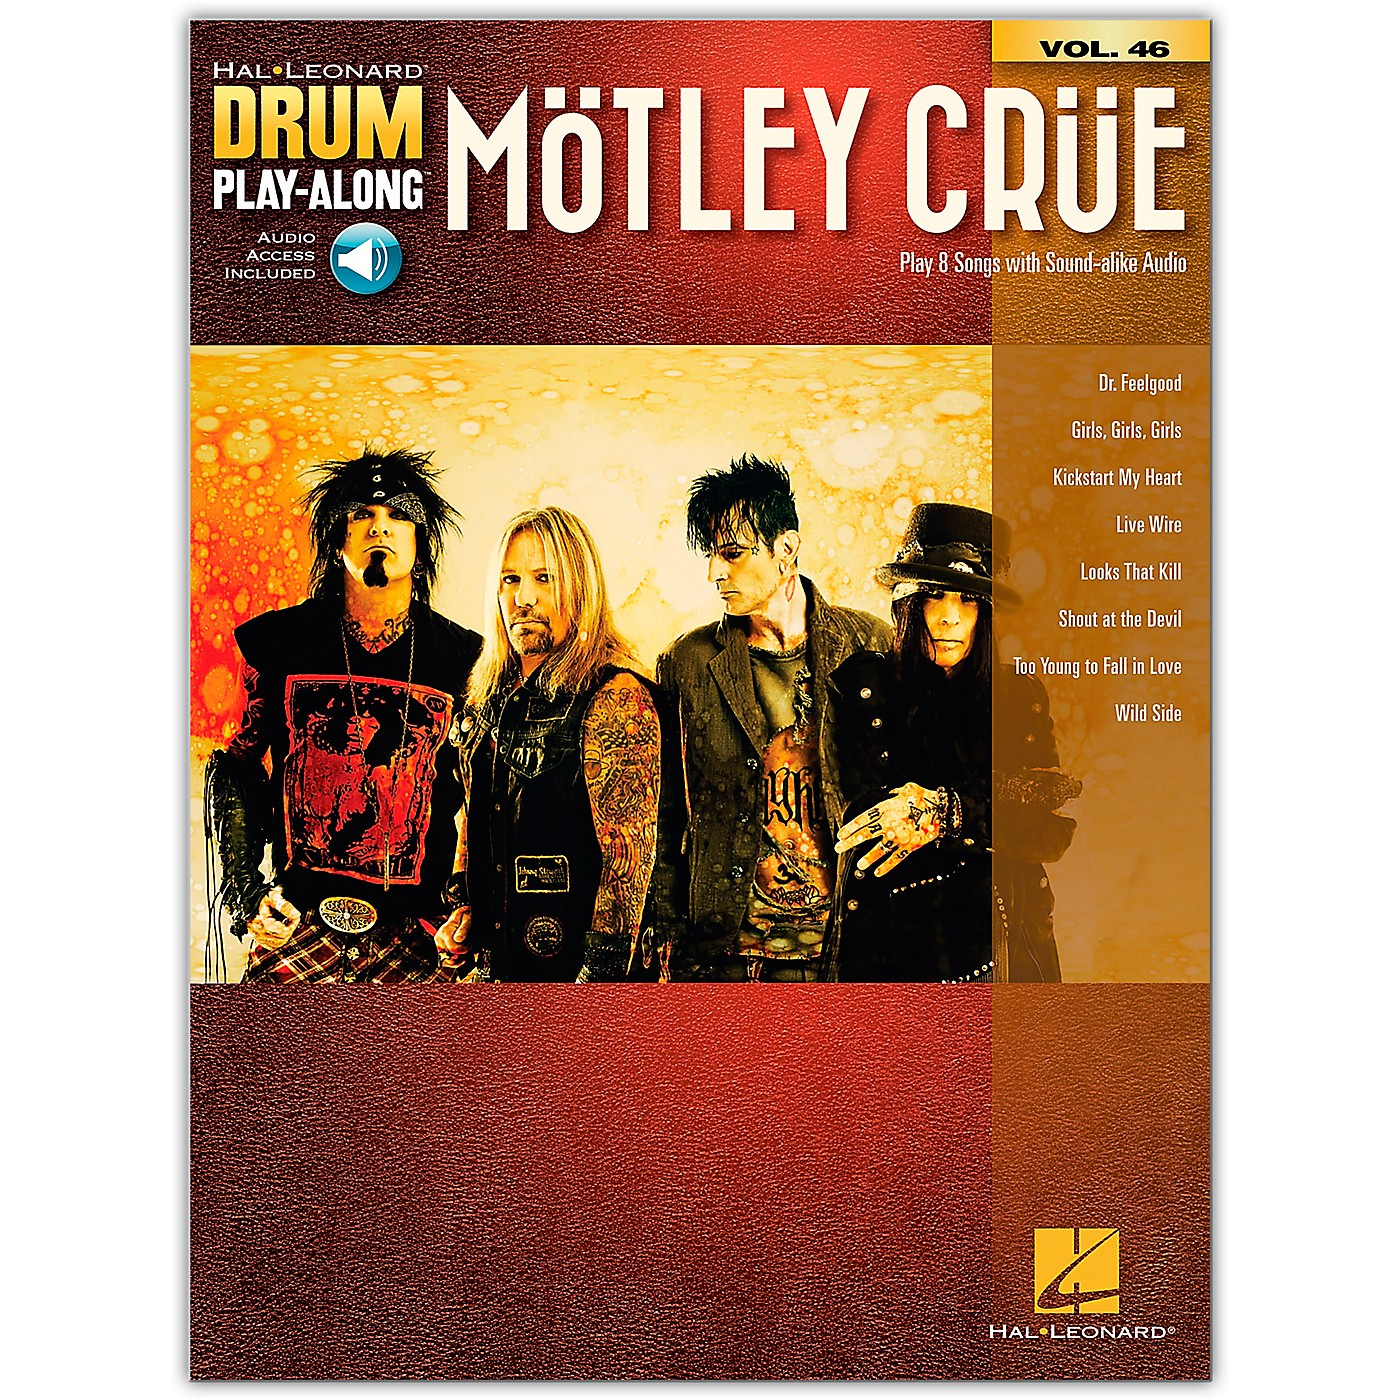 Hal Leonard Motley Crue (Drum Play-Along Volume 46) Drum Play-Along Series Softcover Audio Online by Motley Crue thumbnail